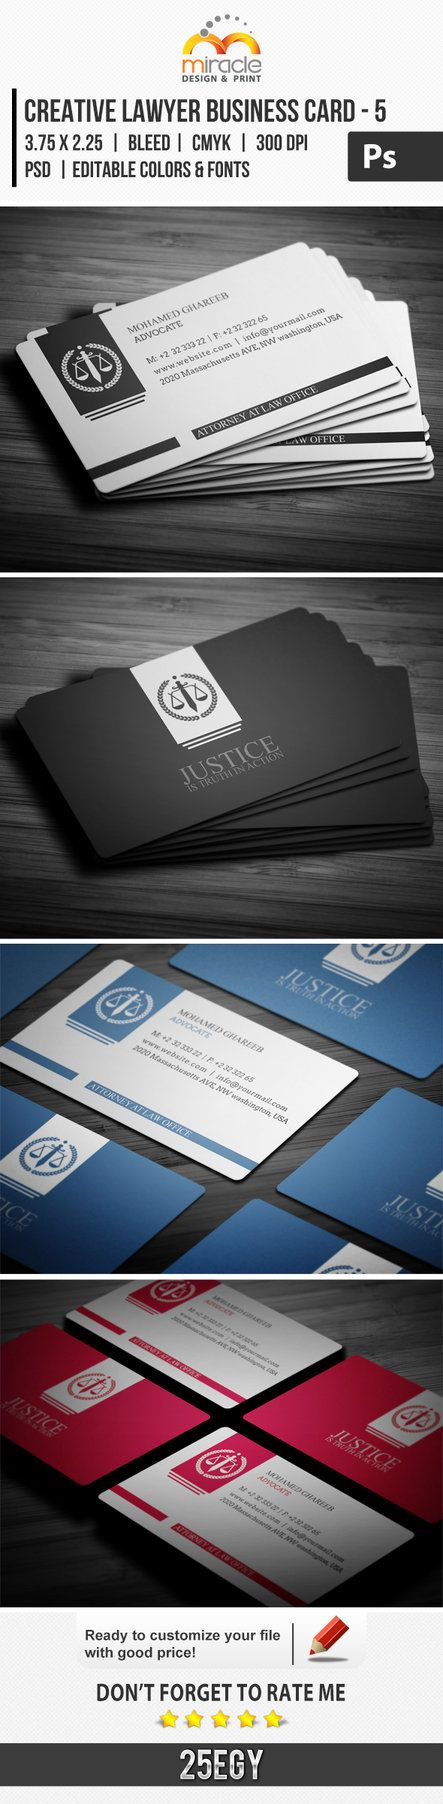 Cool Best Way To File Business Cards Photos - Business Card Ideas ...